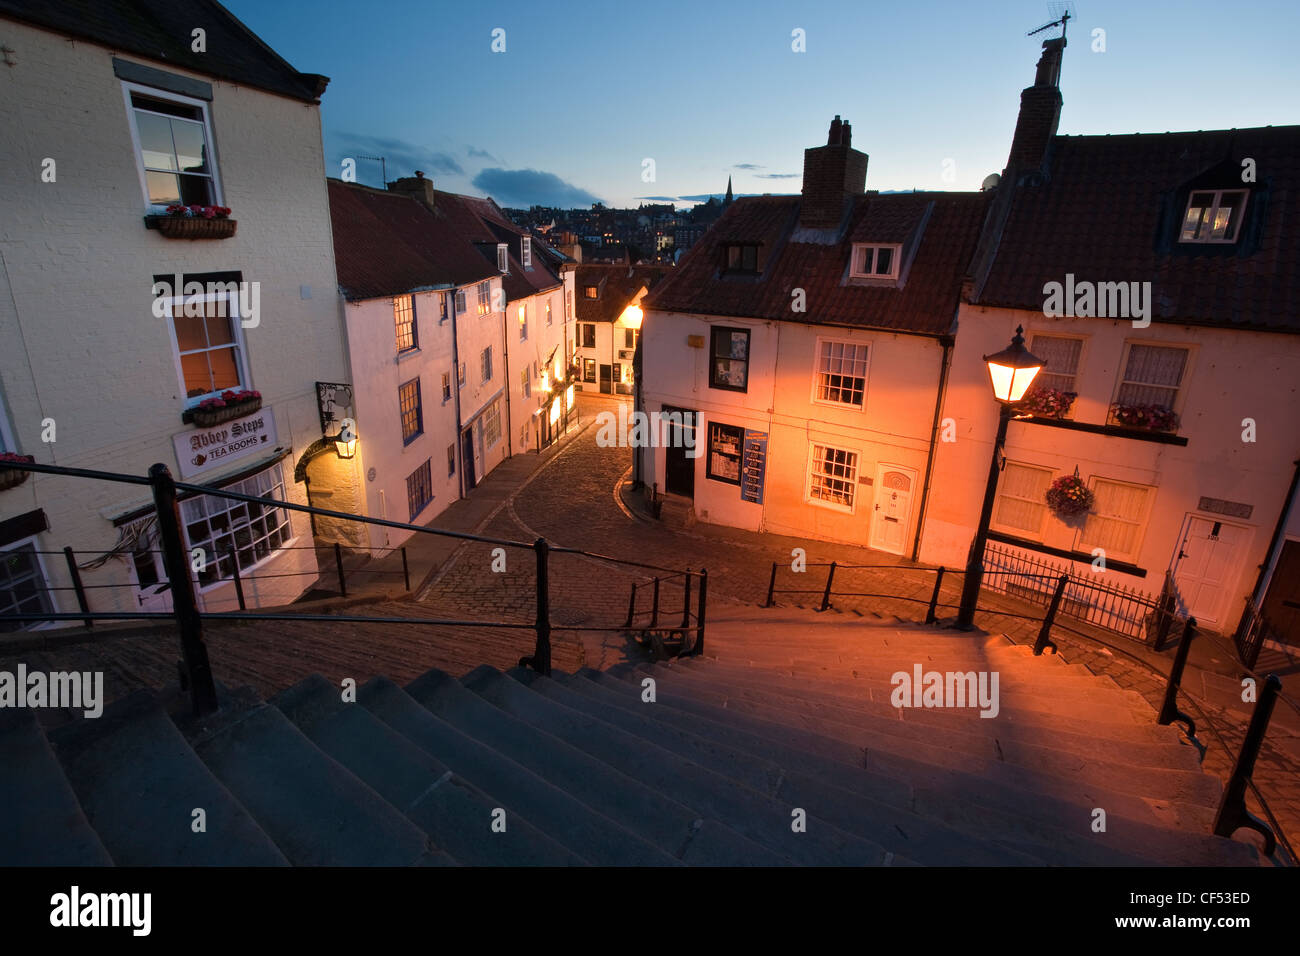 The old town of Whitby at the bottom of the 199 steps that lead up to the top of the East cliff. - Stock Image